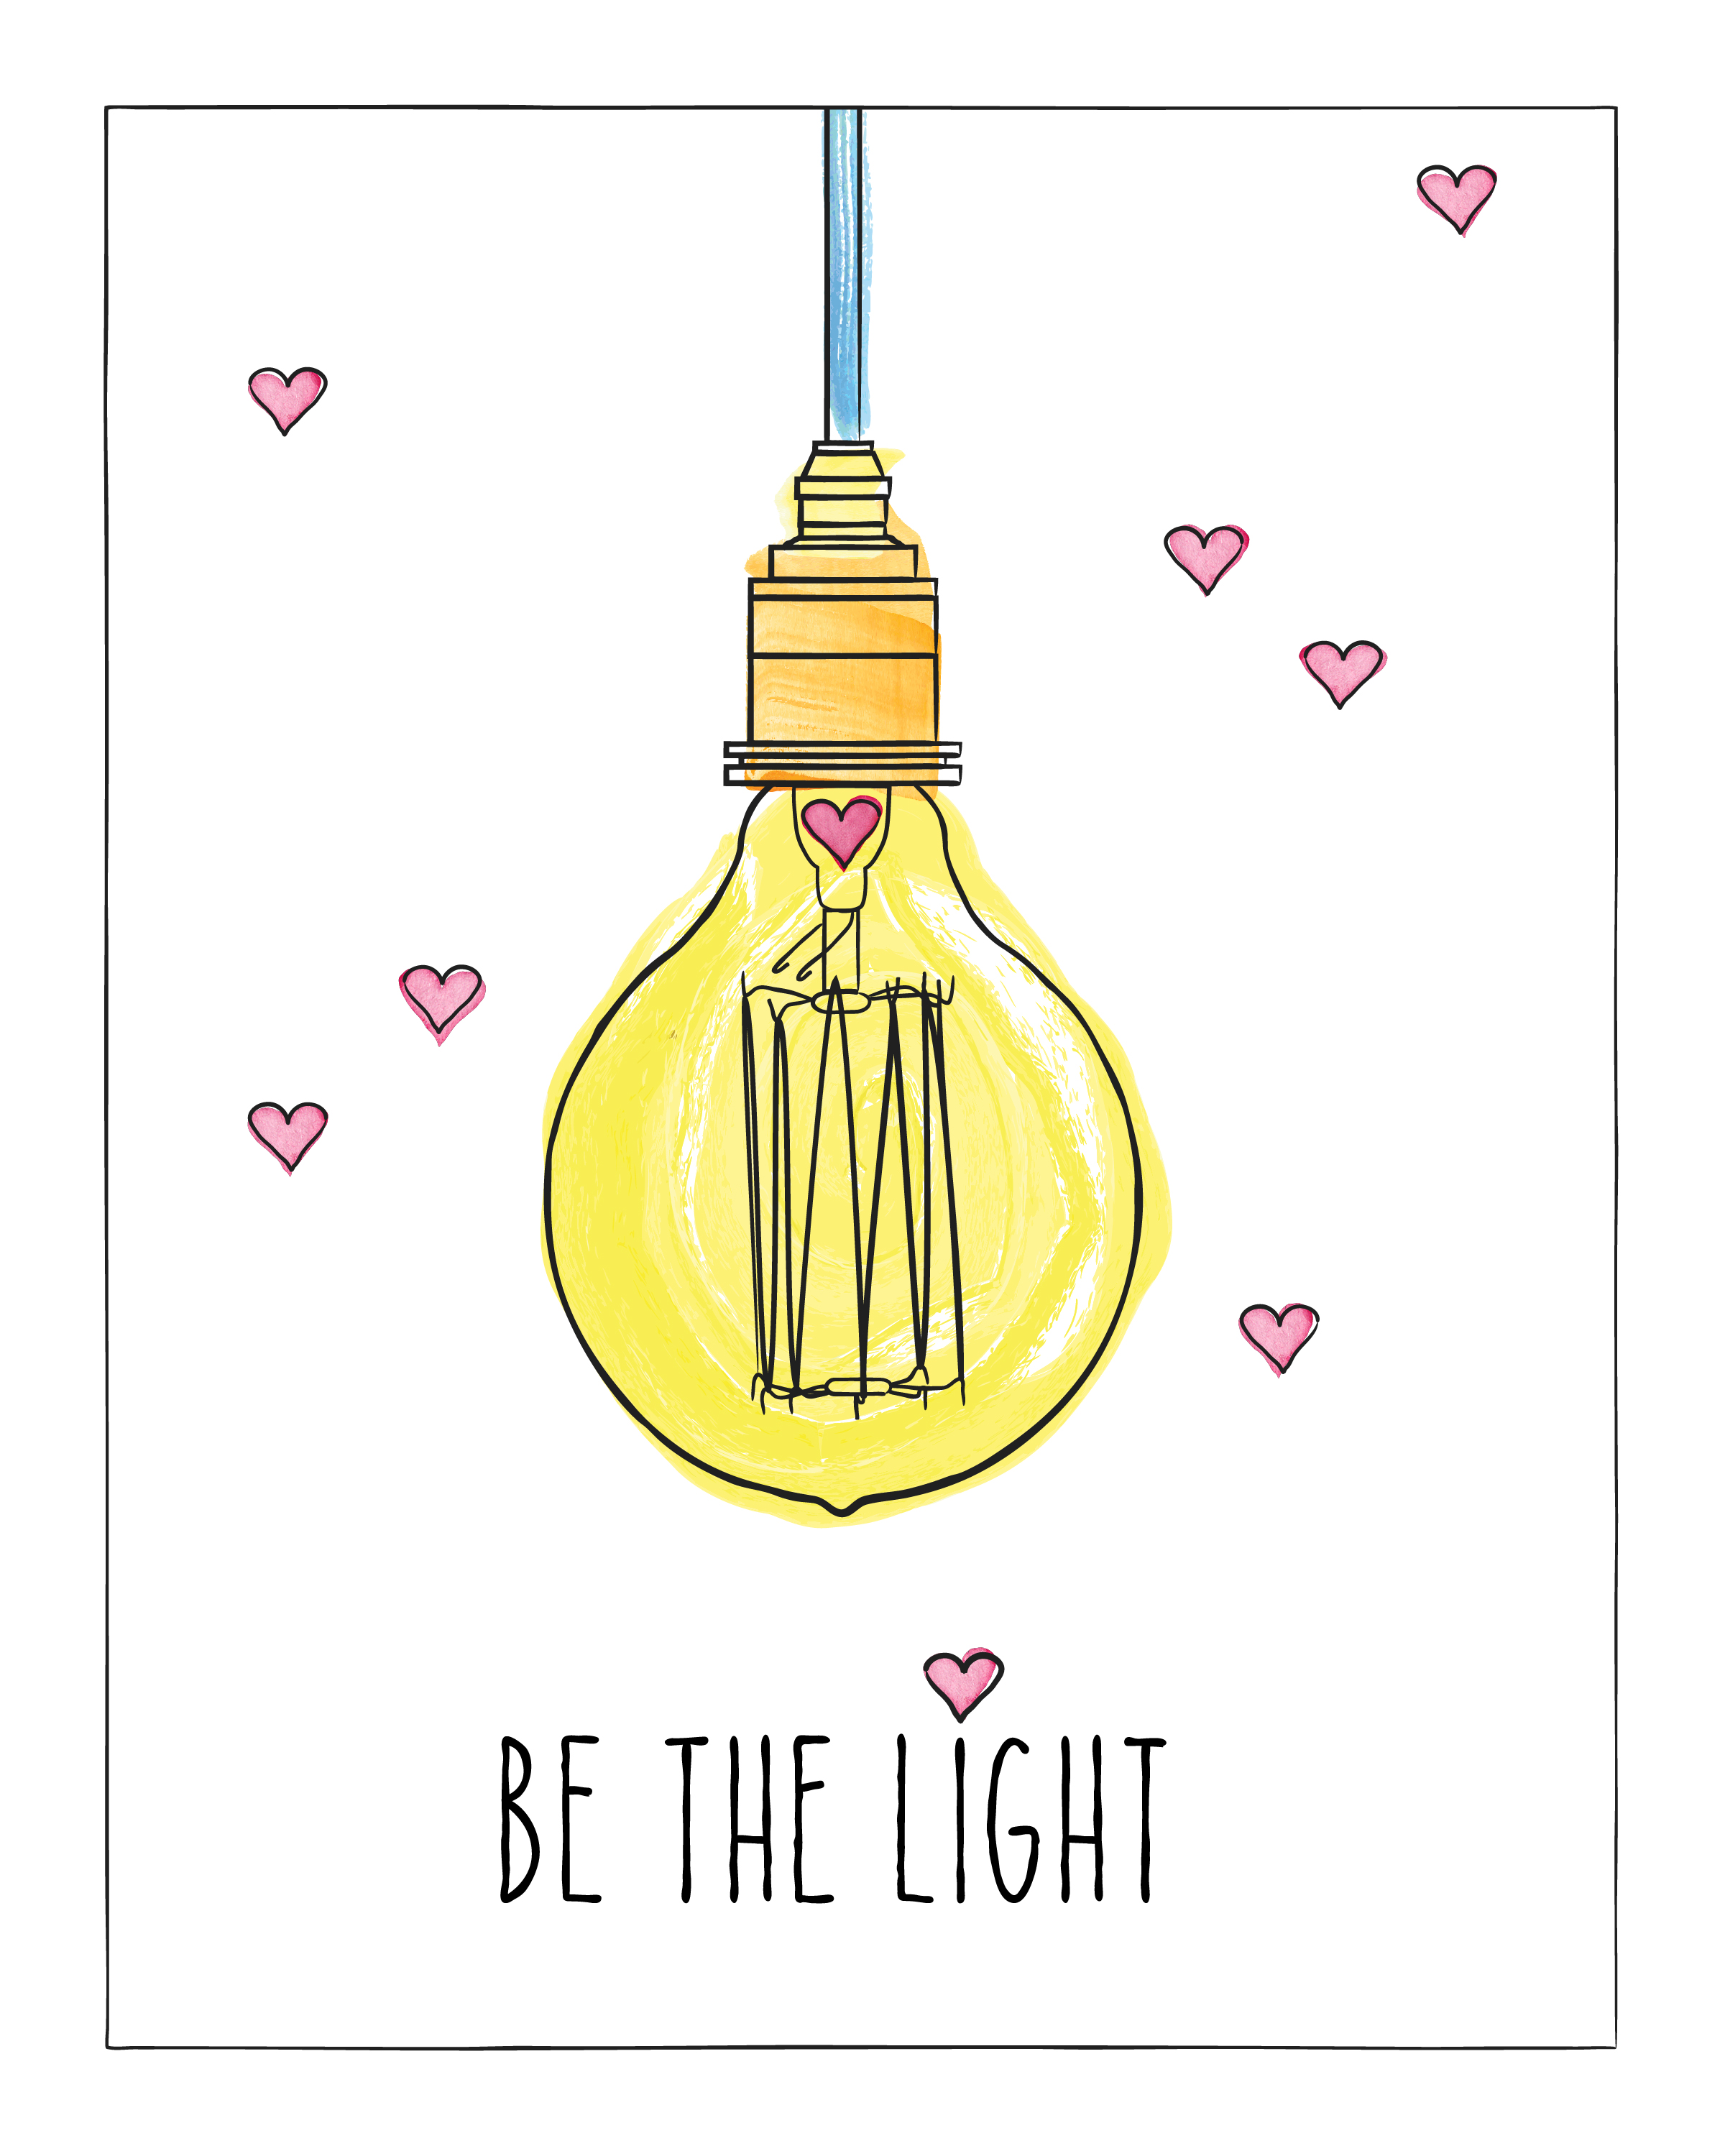 be the light poster_8x10